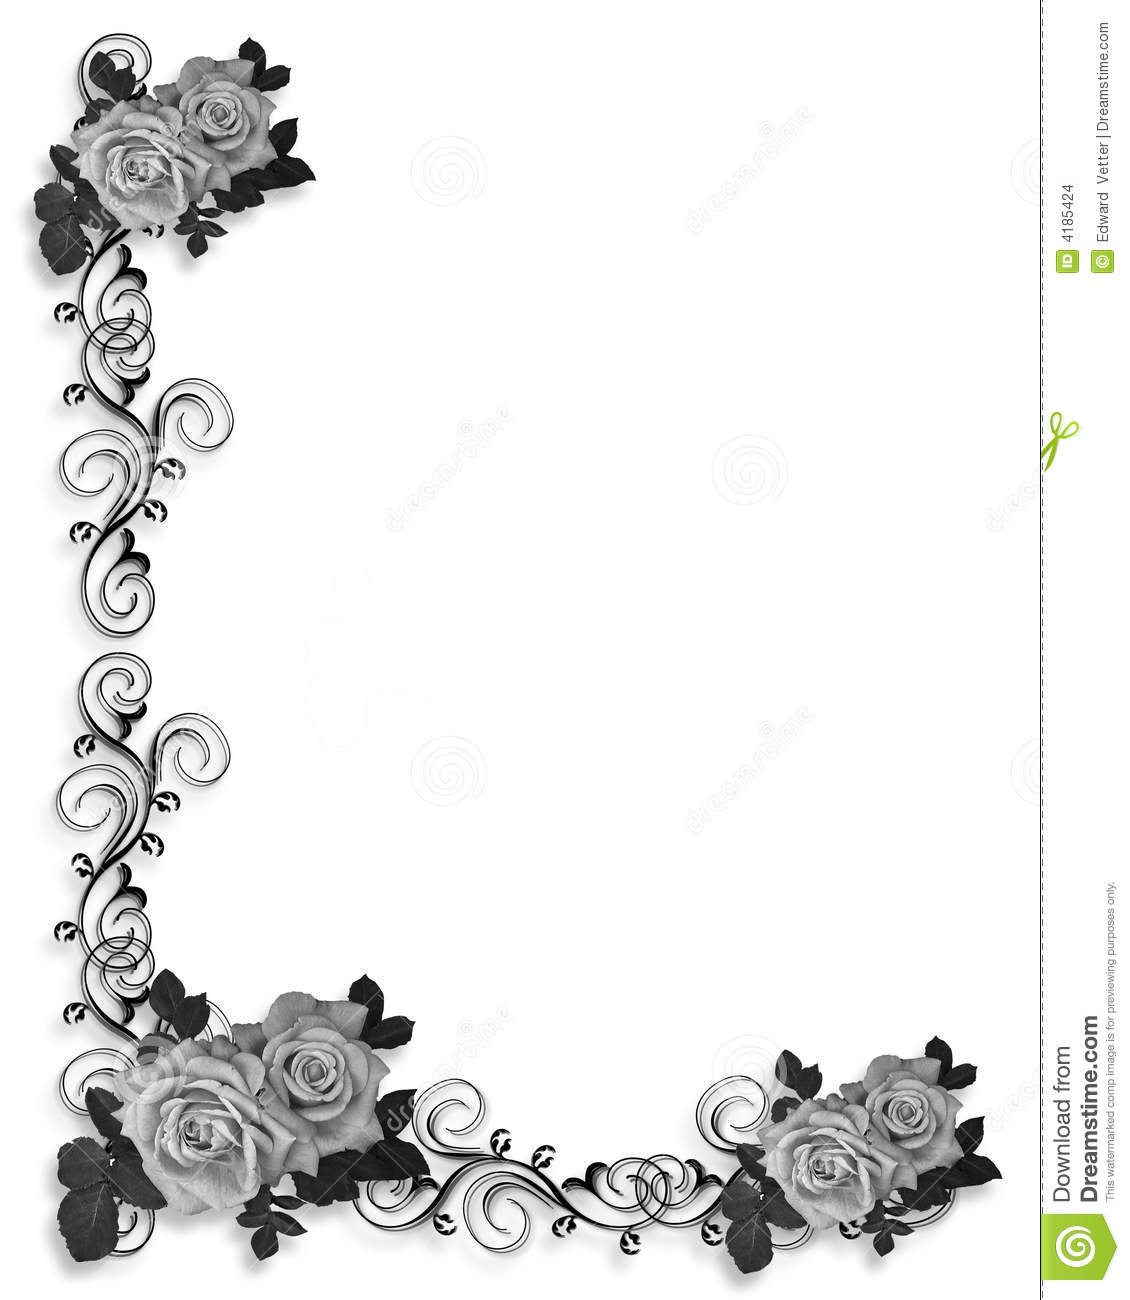 Border Designs Black And White 1130x1300